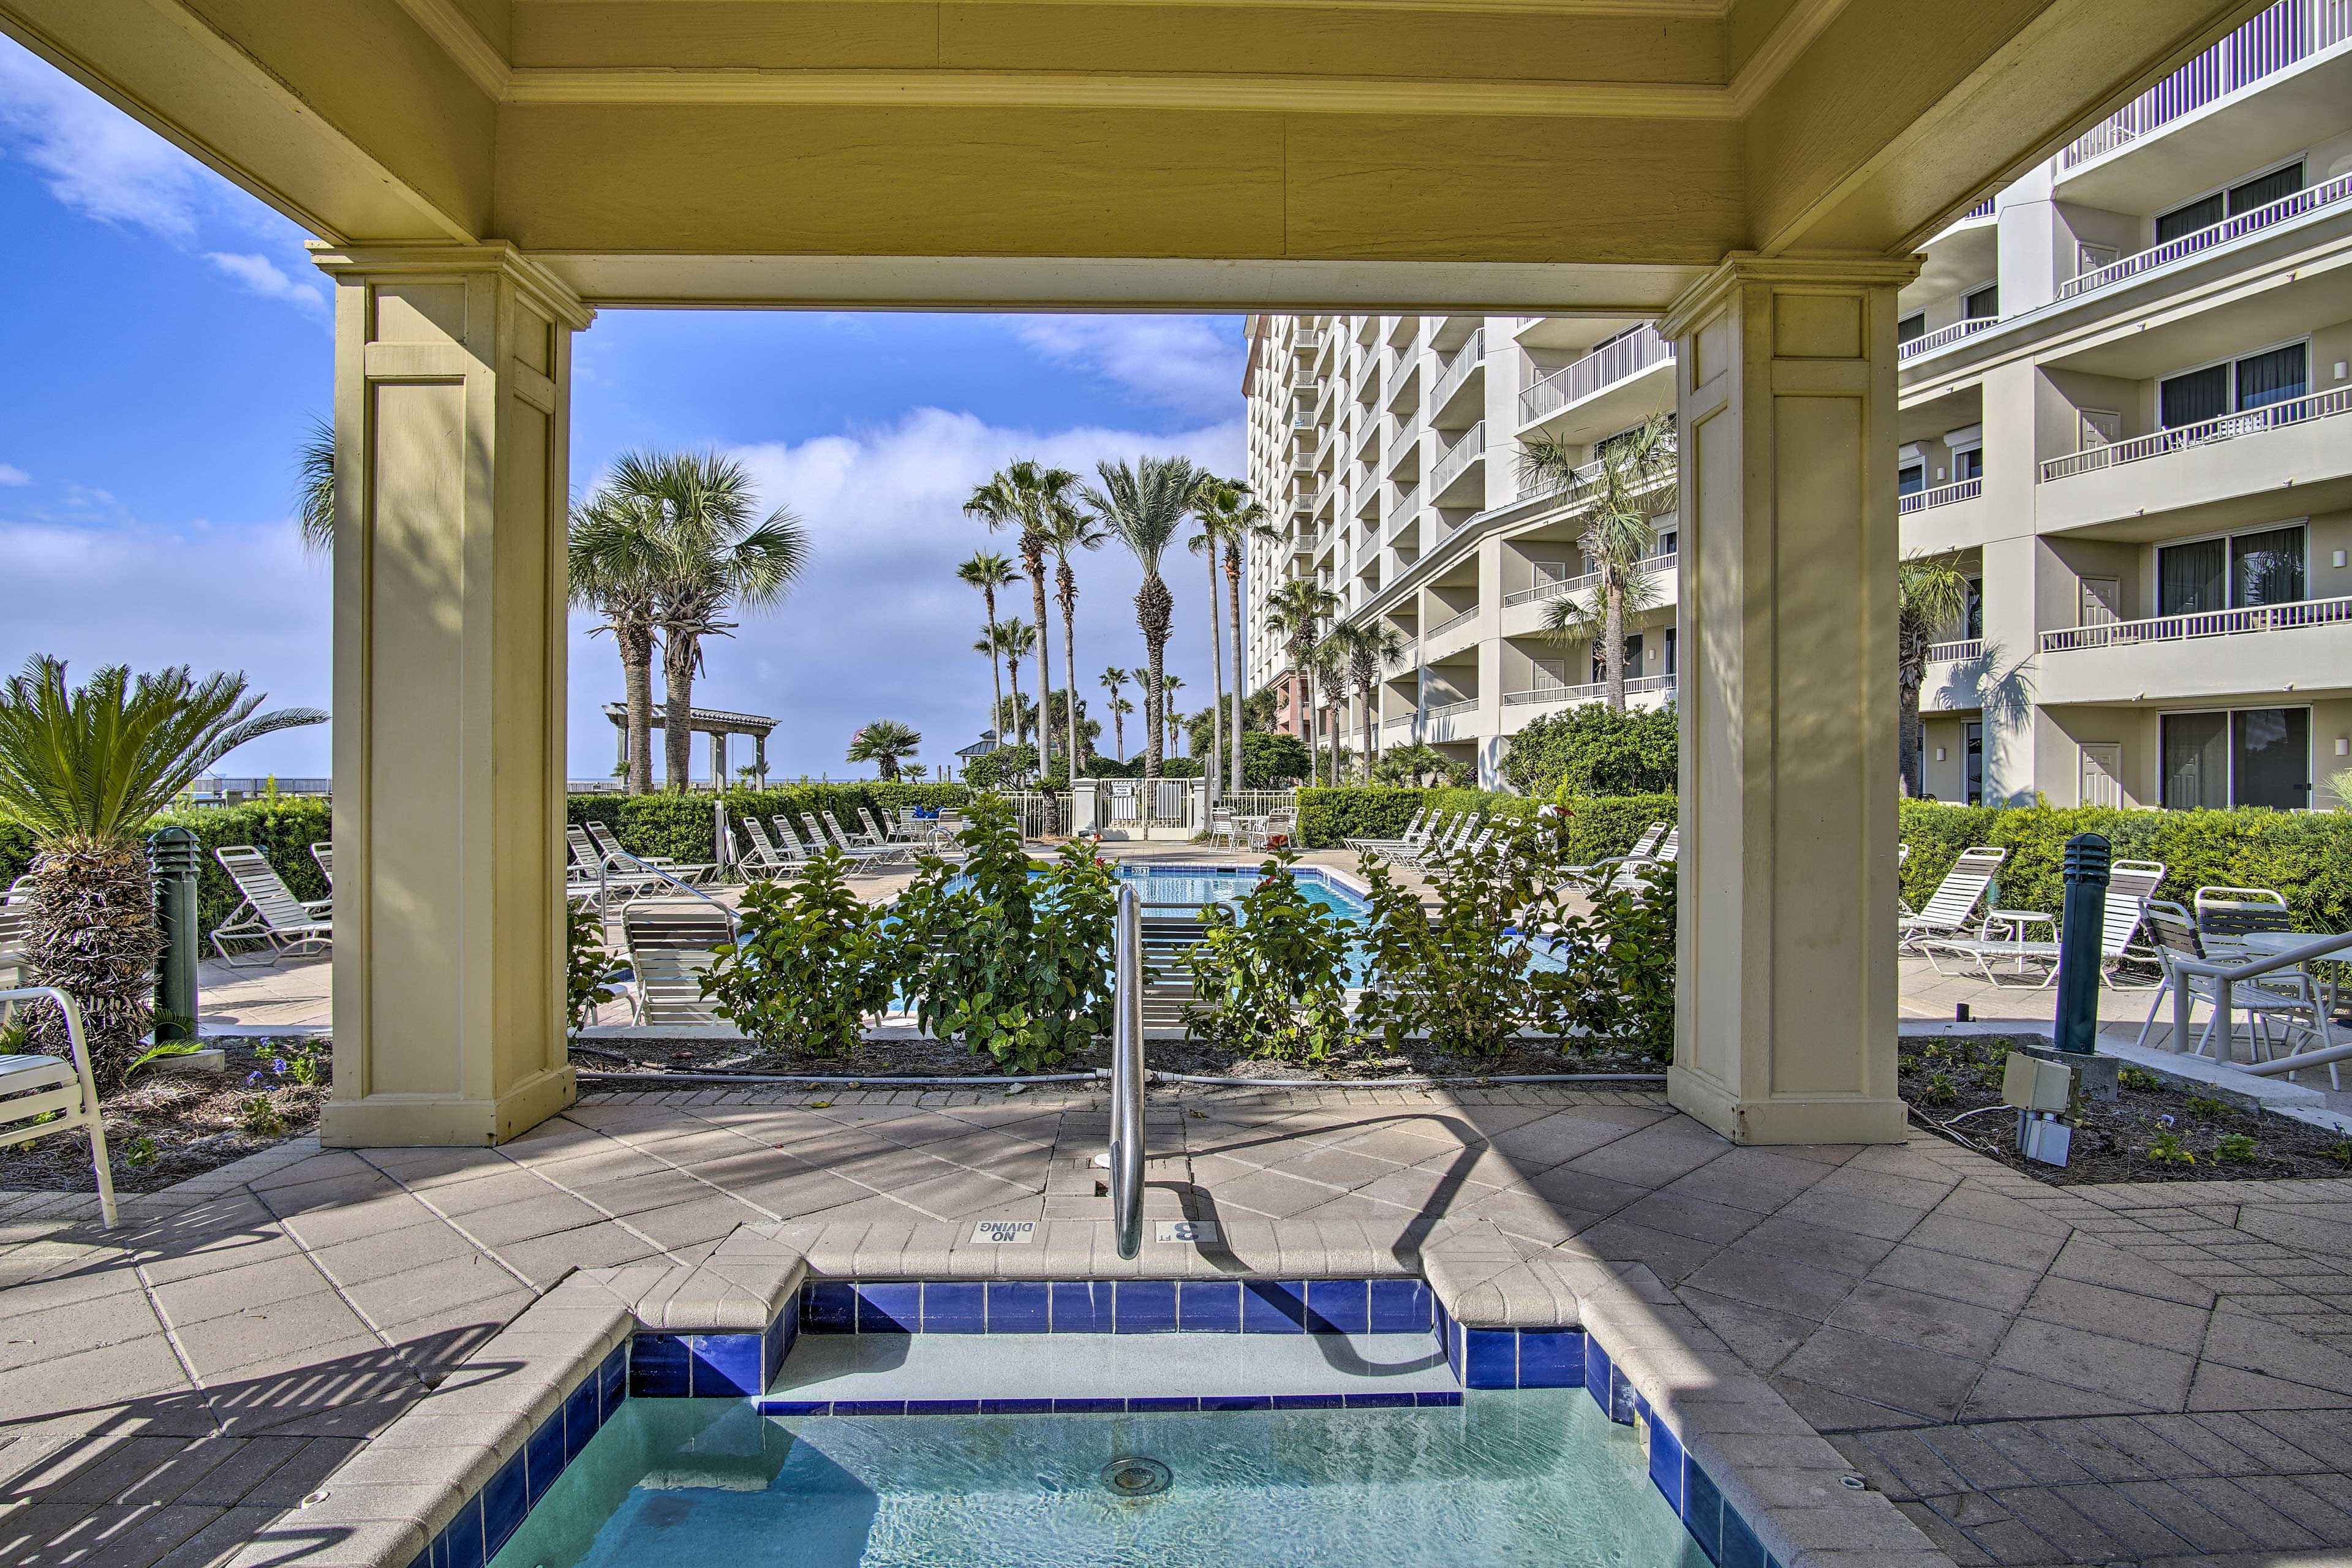 You'll have access to 4 pools and 4 hot tubs during your stay!